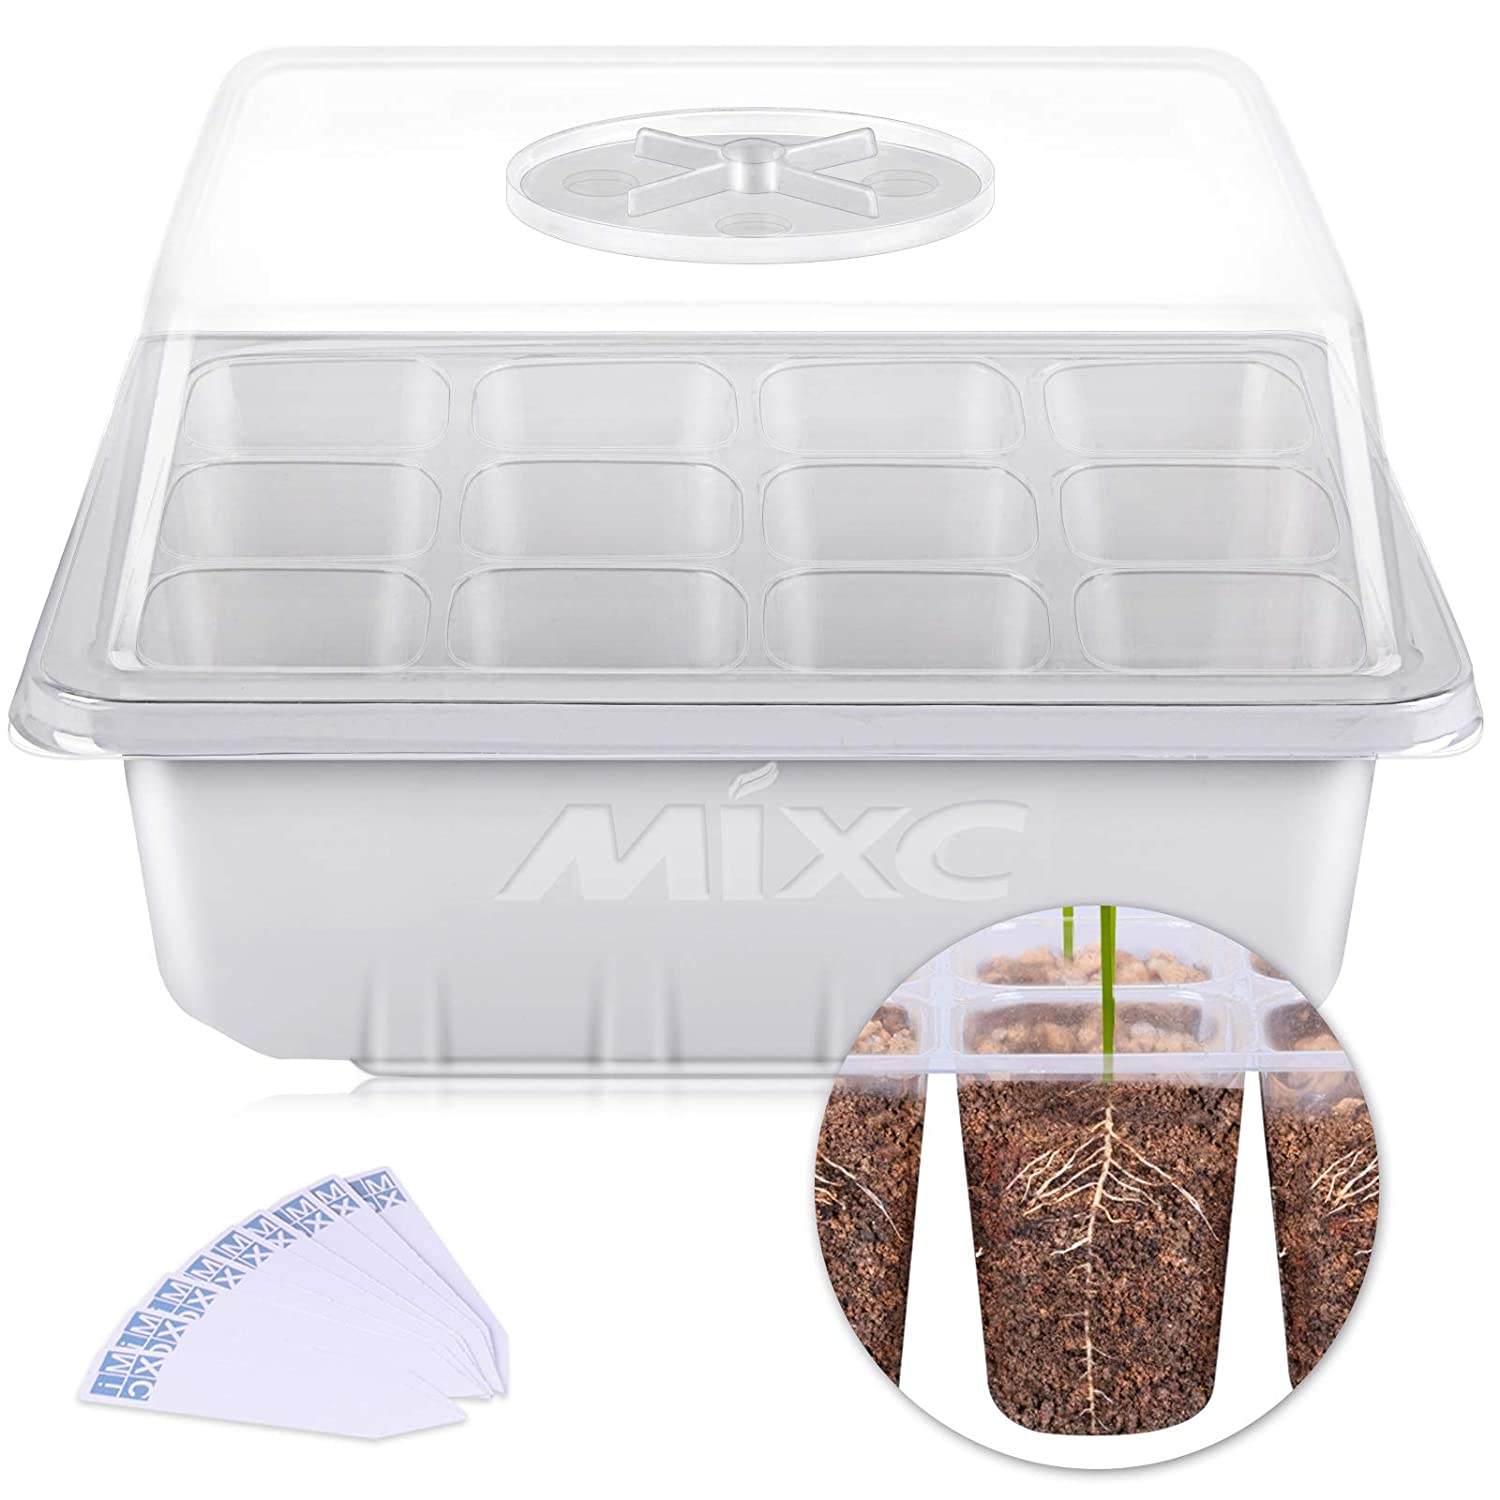 10 Pack Seed Starter Trays, MIXC Seedling Tray Plant Grow Kit Mini Propagator with Humidity Vented Dome and Base for Seeds Starting Greenhouse (12 Cells per Tray) 71gQVRP3v1L